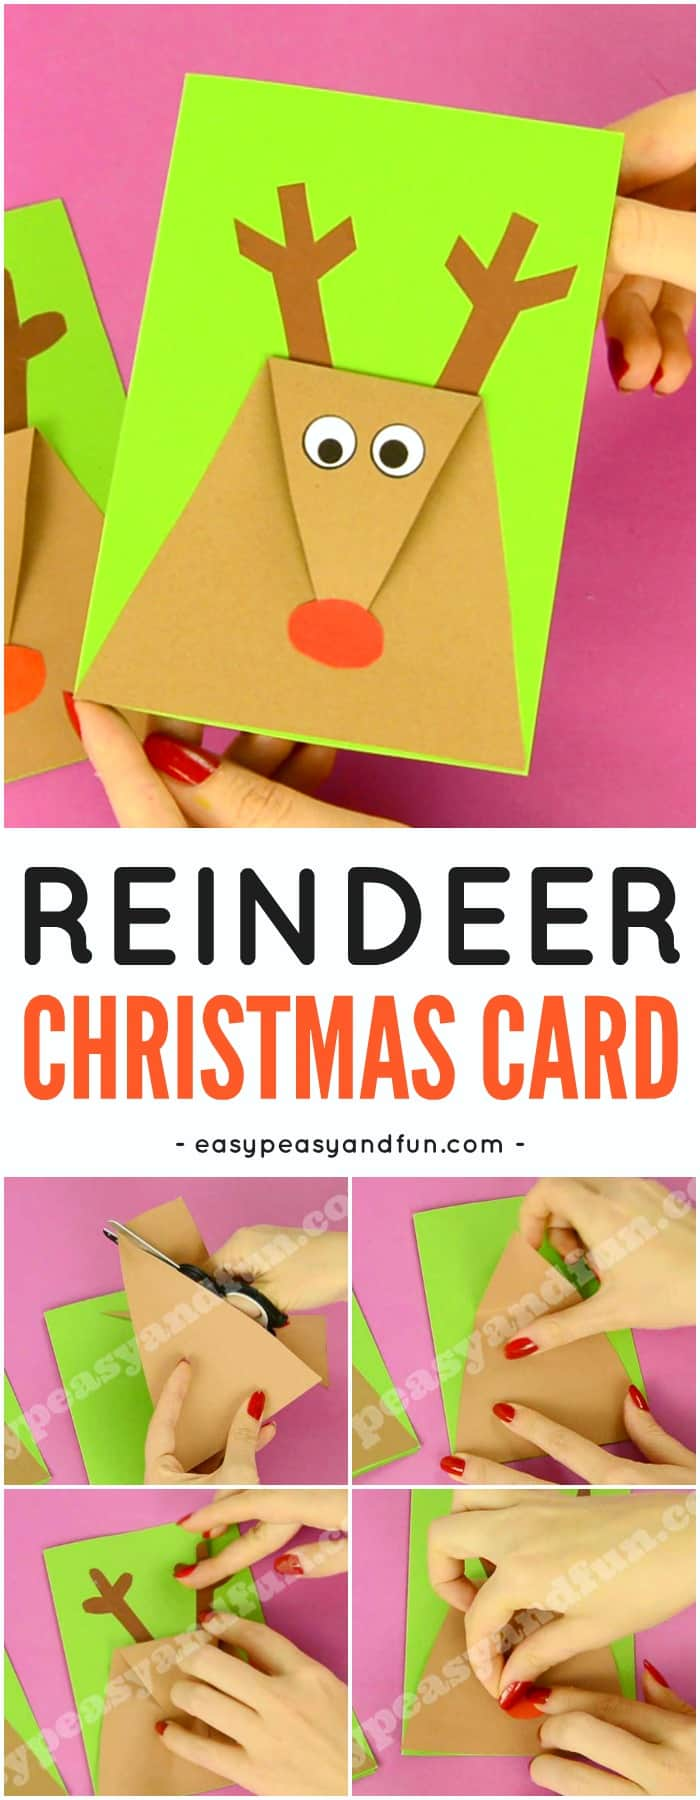 reindeer christmas card easy peasy and fun reindeer christmas card easy peasy